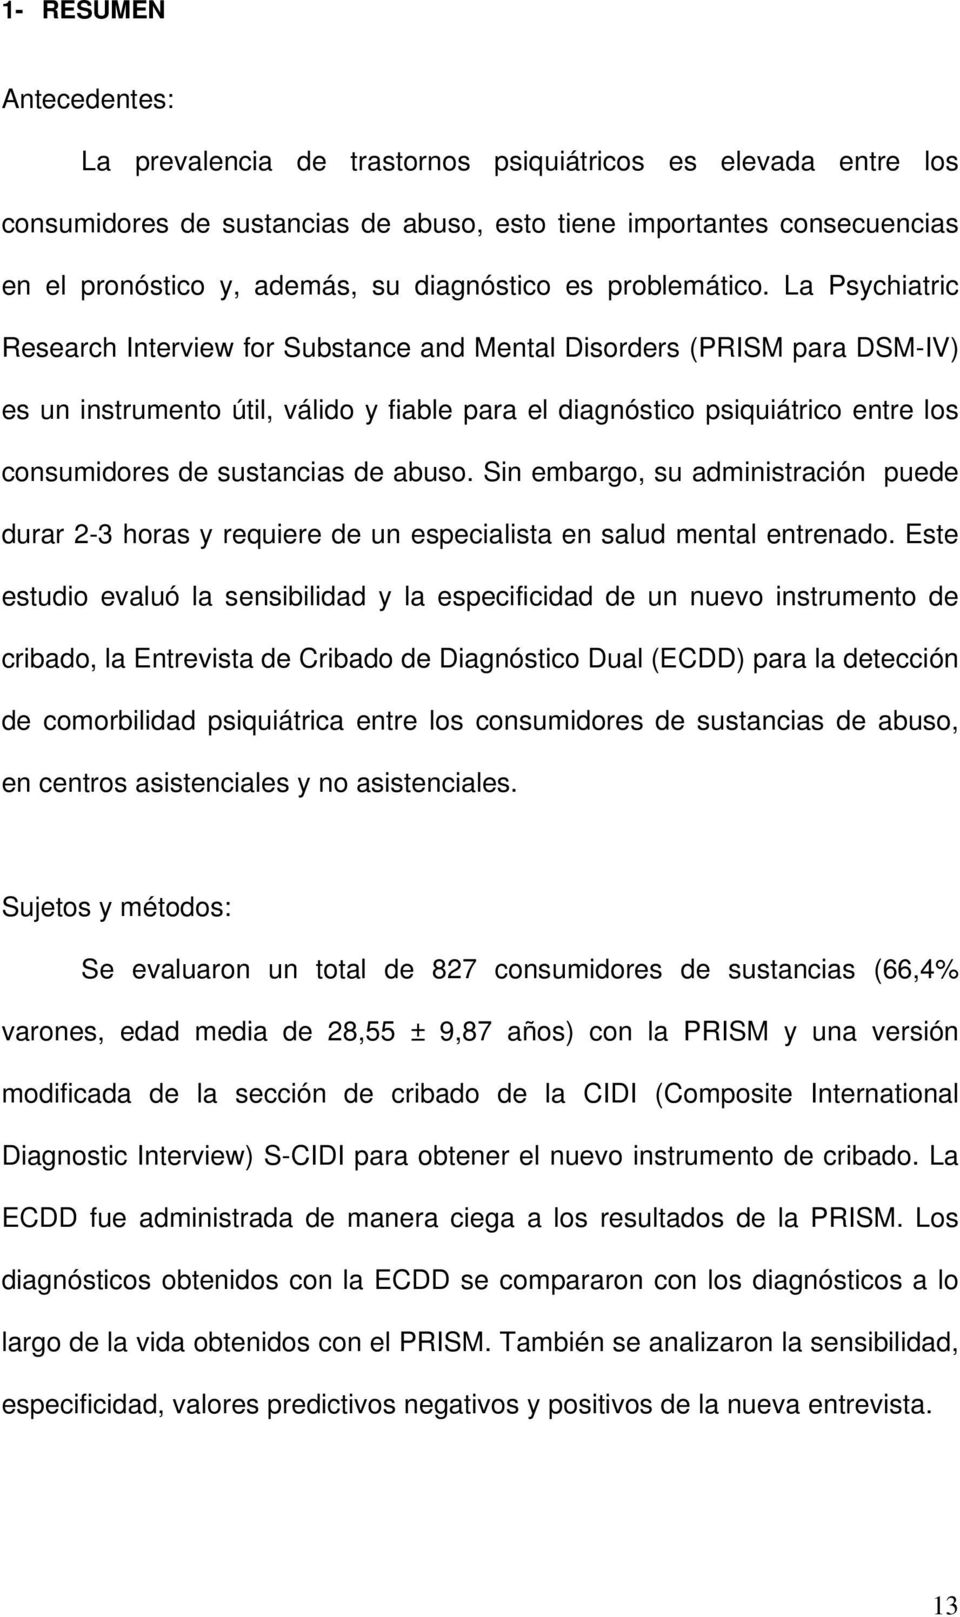 La Psychiatric Research Interview for Substance and Mental Disorders (PRISM para DSM-IV) es un instrumento útil, válido y fiable para el diagnóstico psiquiátrico entre los consumidores de sustancias